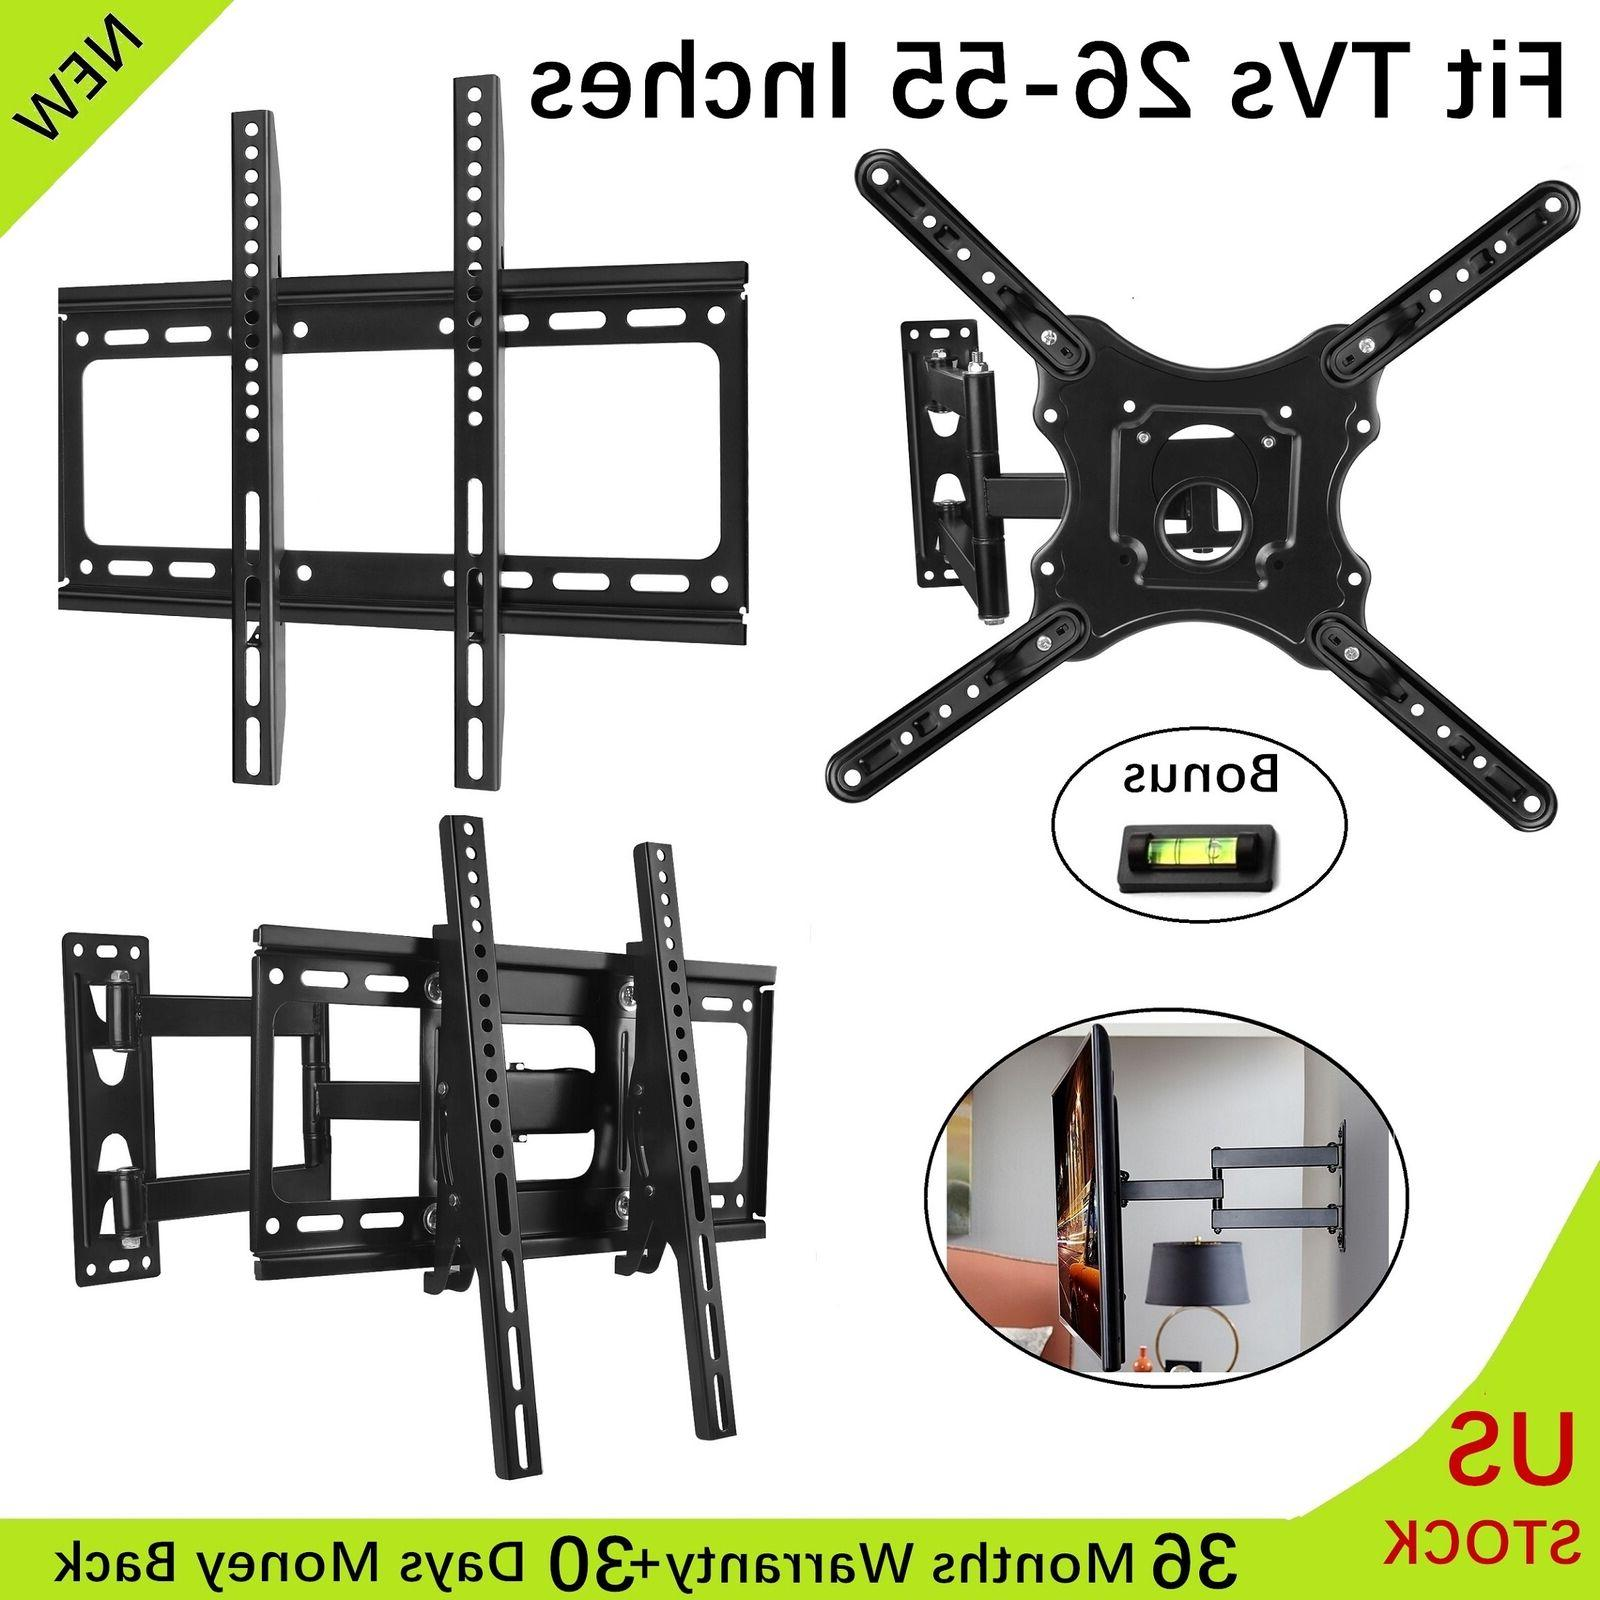 Articulating Wall Mount 32 39 52 55 LED LCD Plasma CC